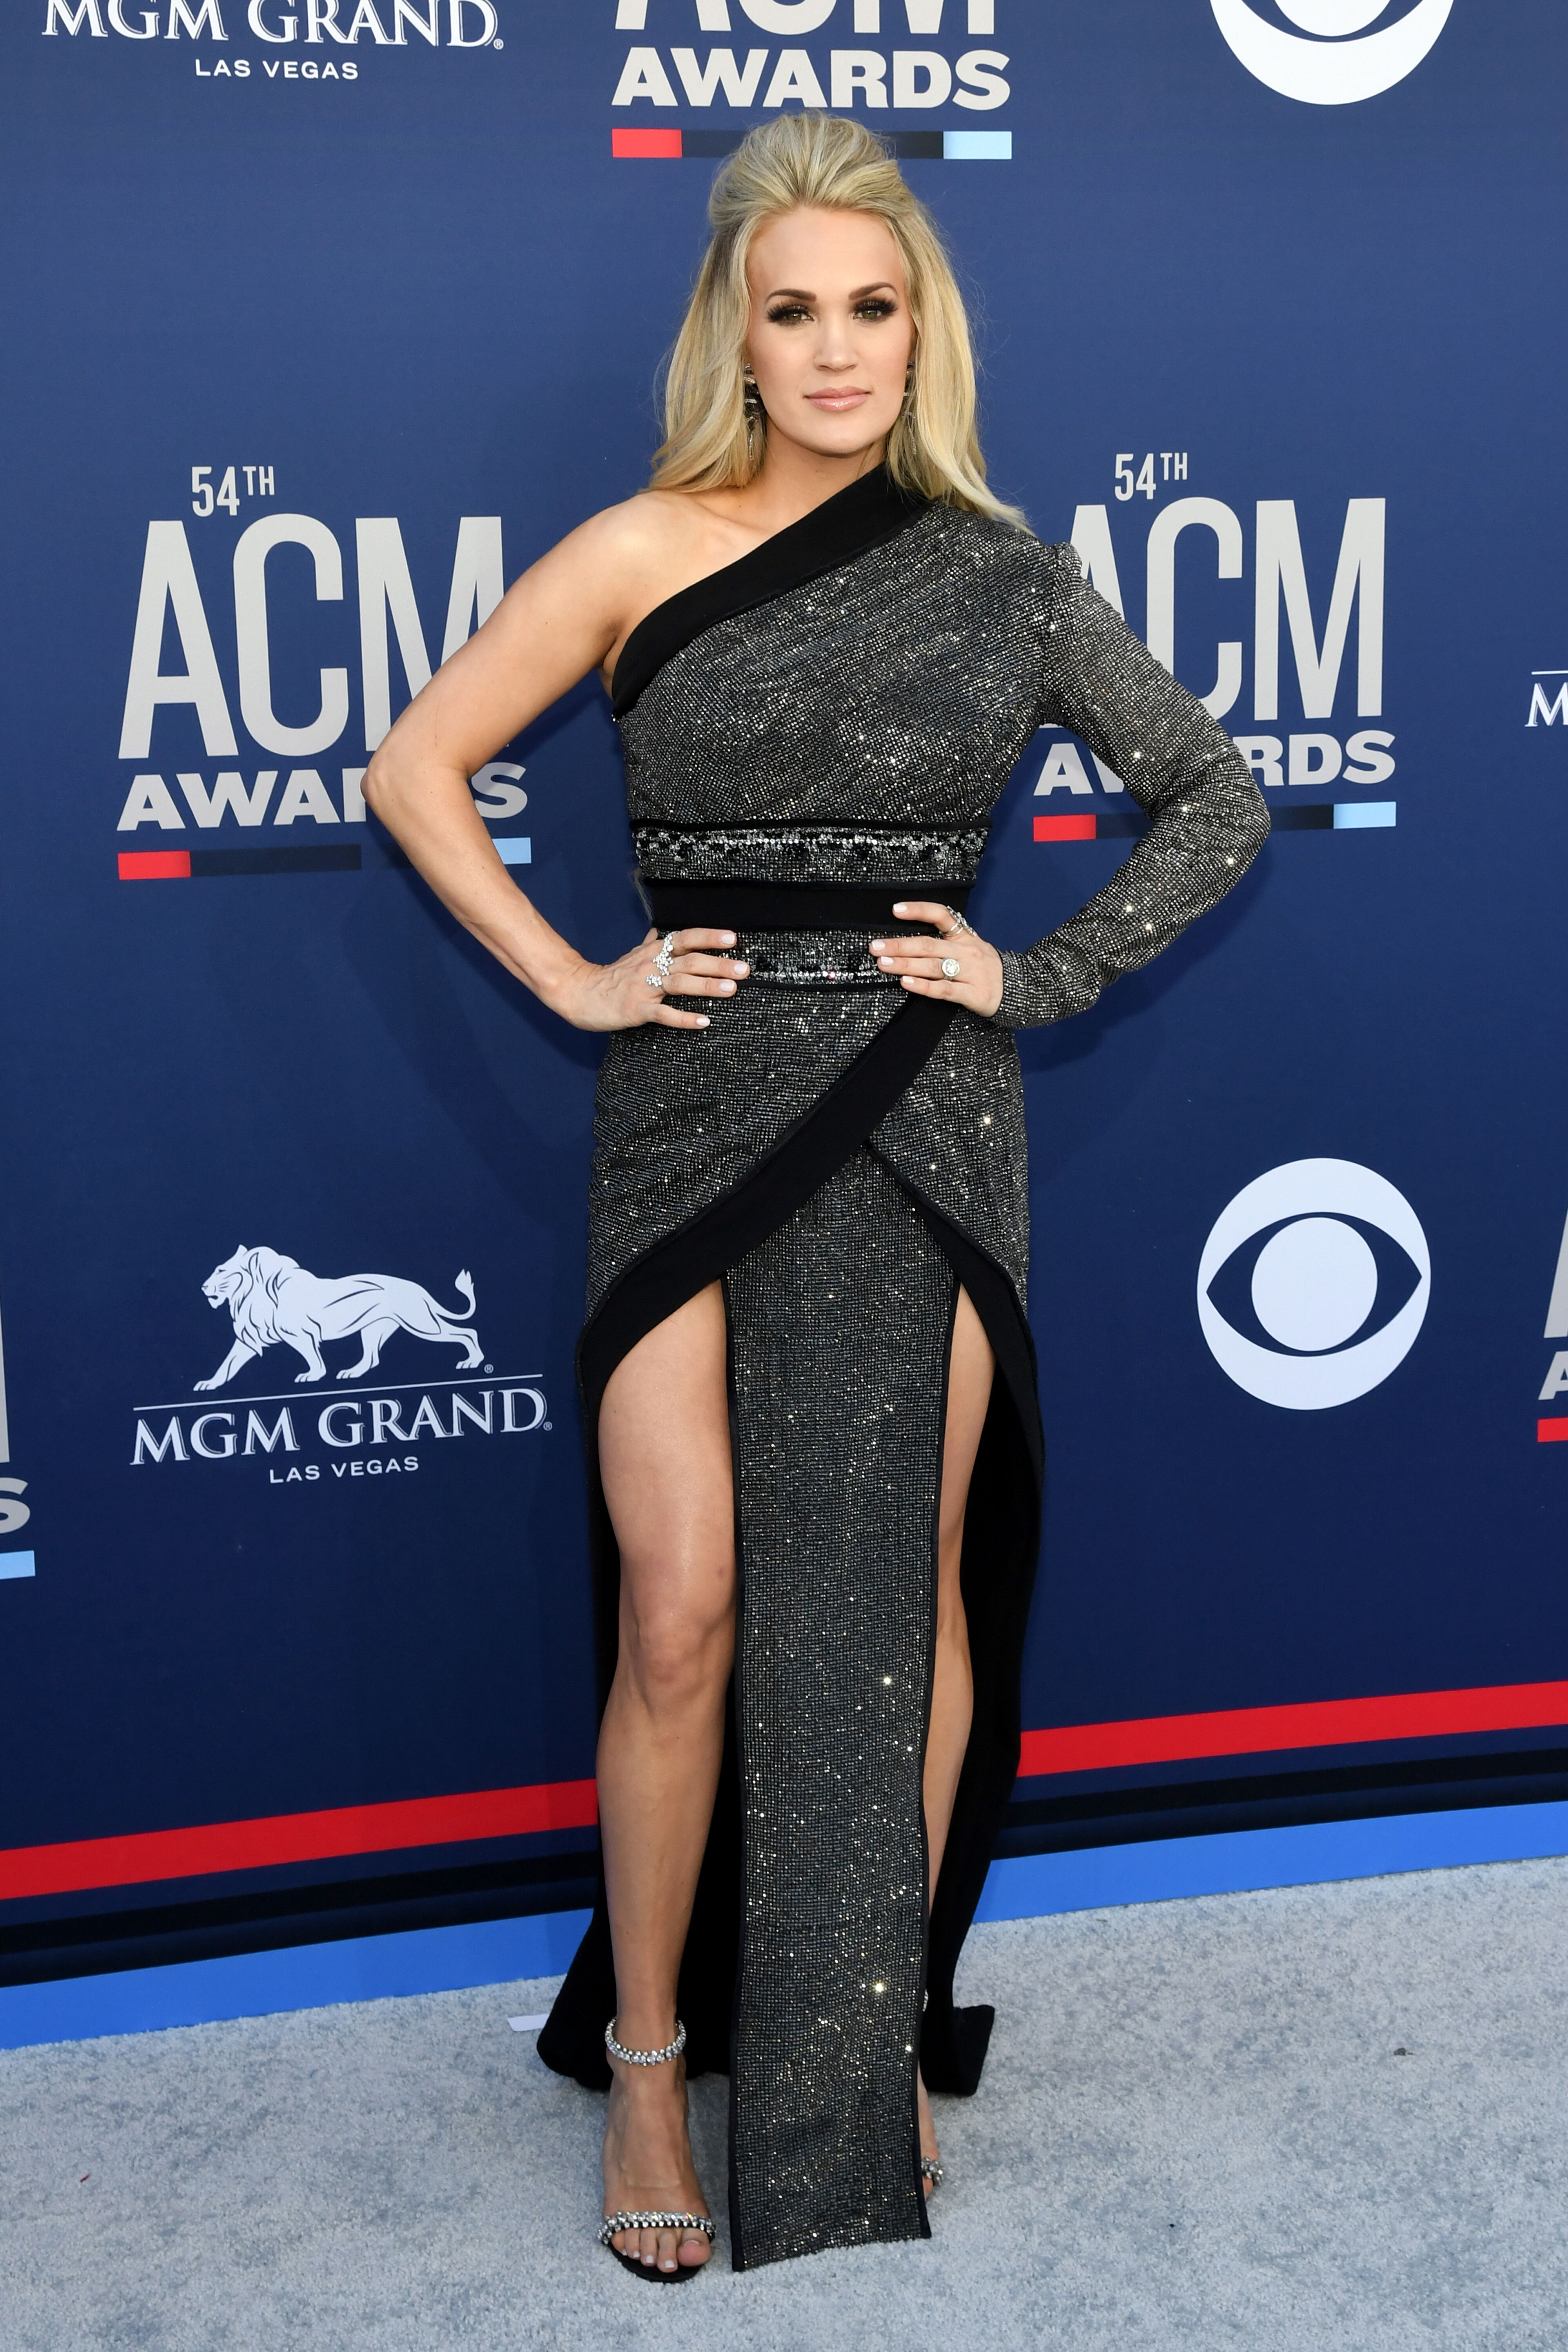 Carrie Underwood at the 2019 Academy of Country Music Awards | Source: Getty Images